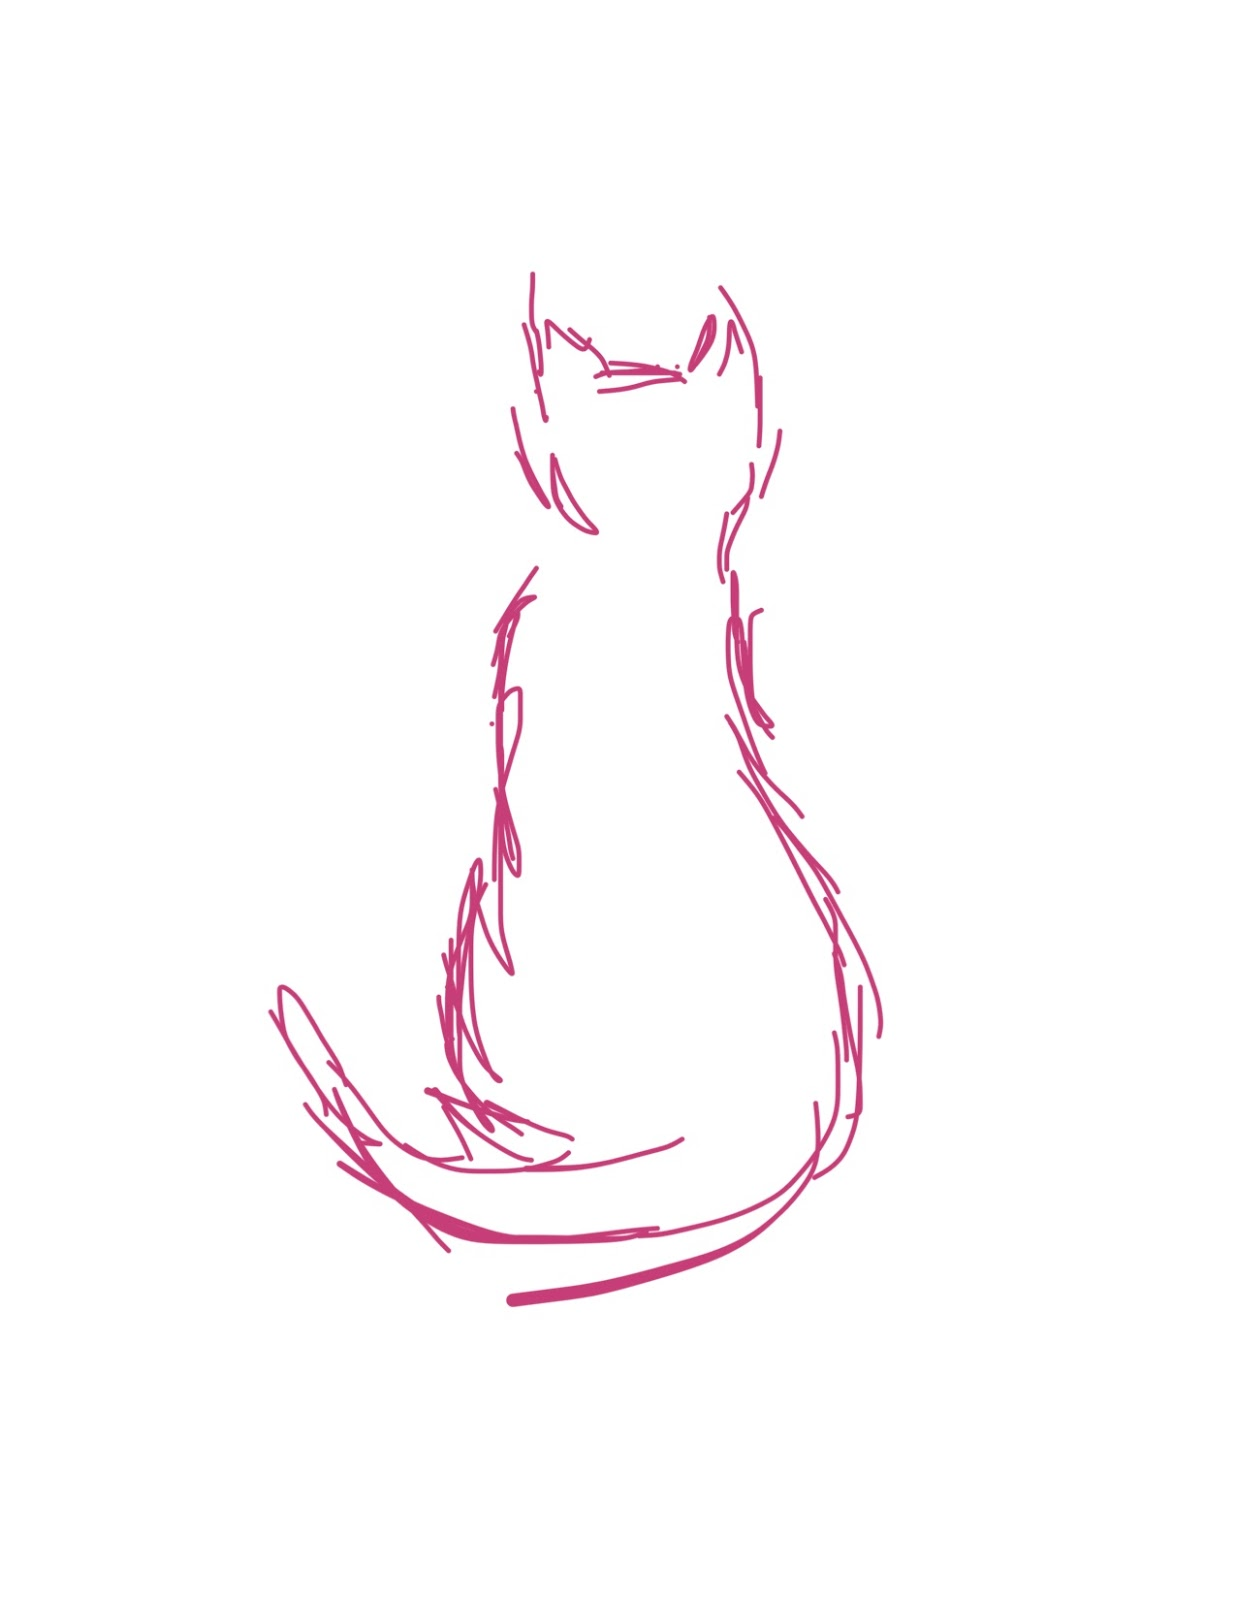 Sketched outline of cat